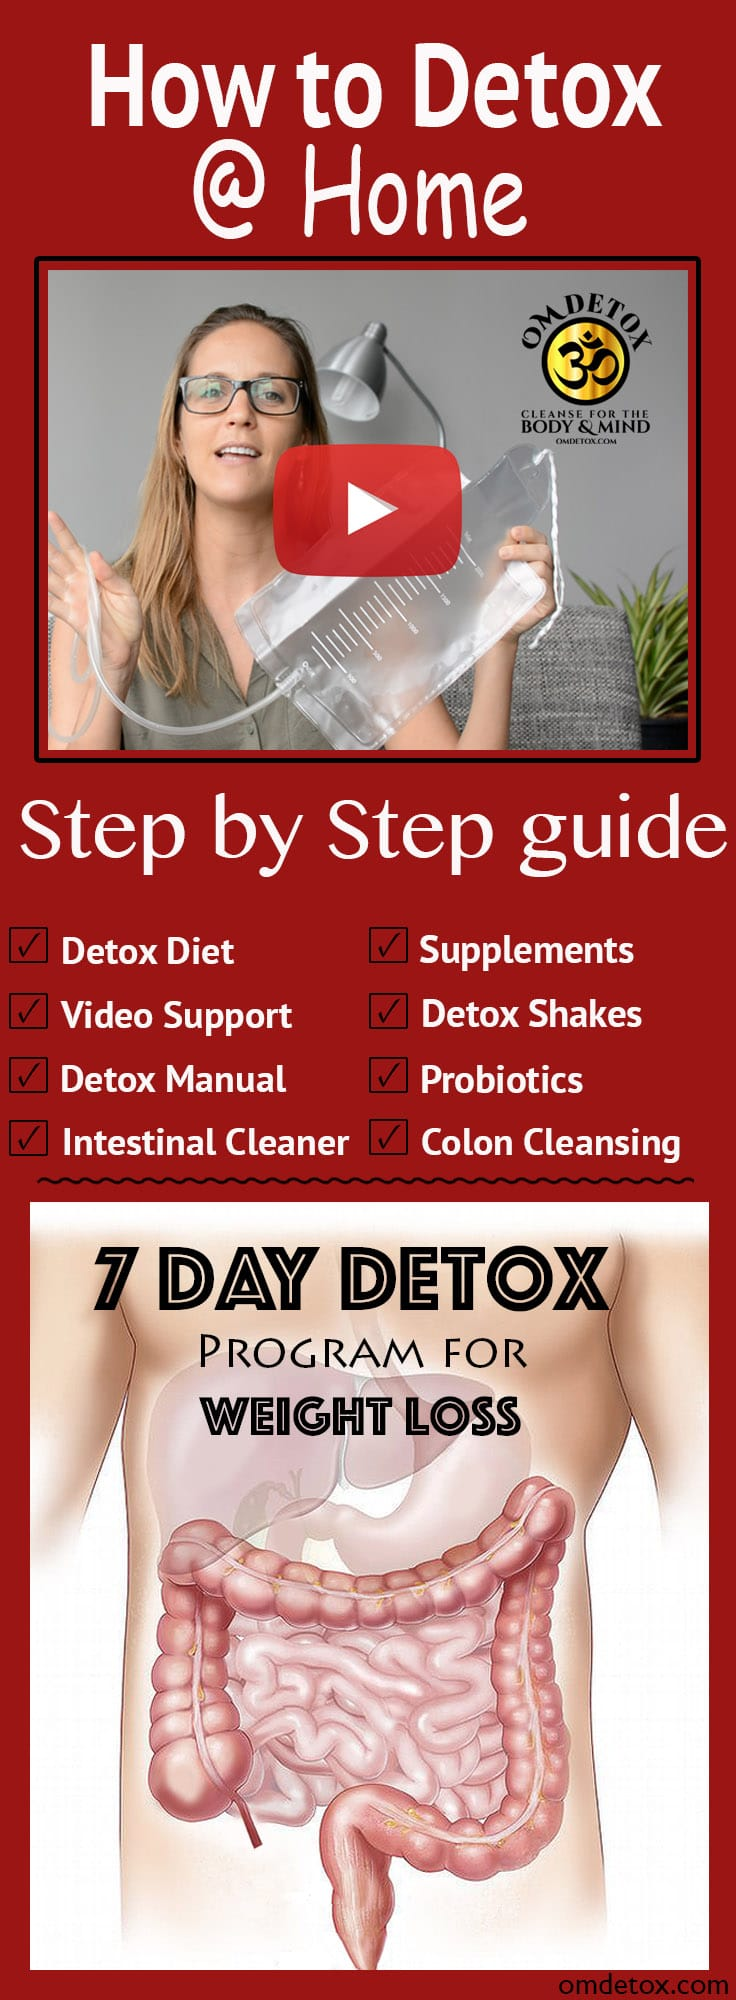 How to detox at home. Step by step 7 day detox program, Detox diet and Detox drinks